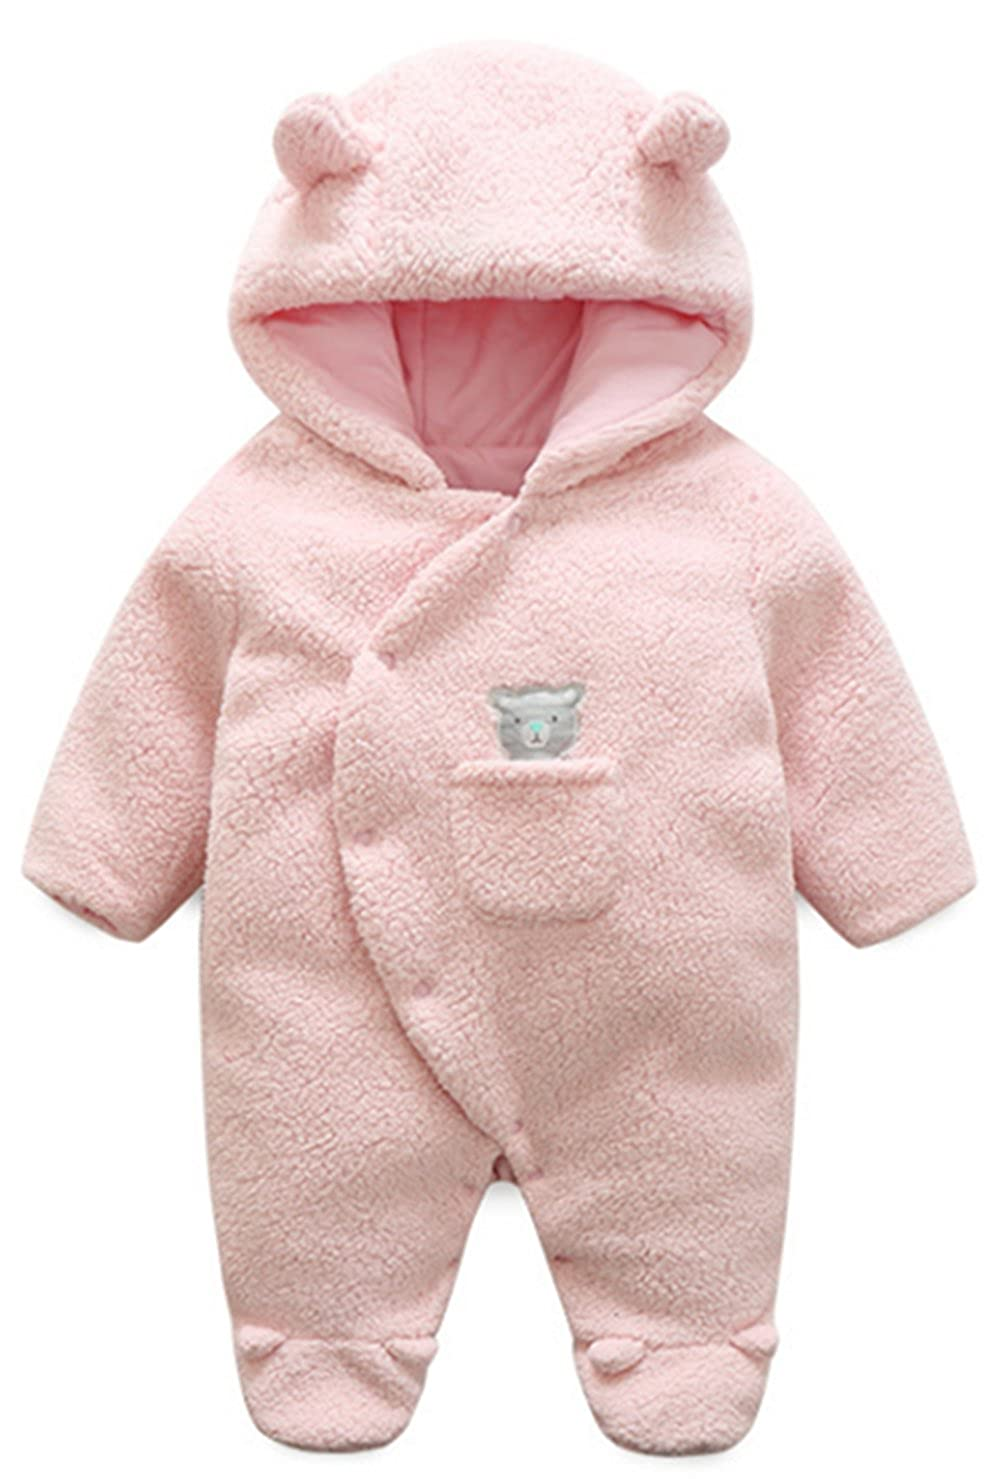 1131f74b0 Amazon.com  BANGELY Newborn Baby Winter Thicken Cartoon Sheep ...